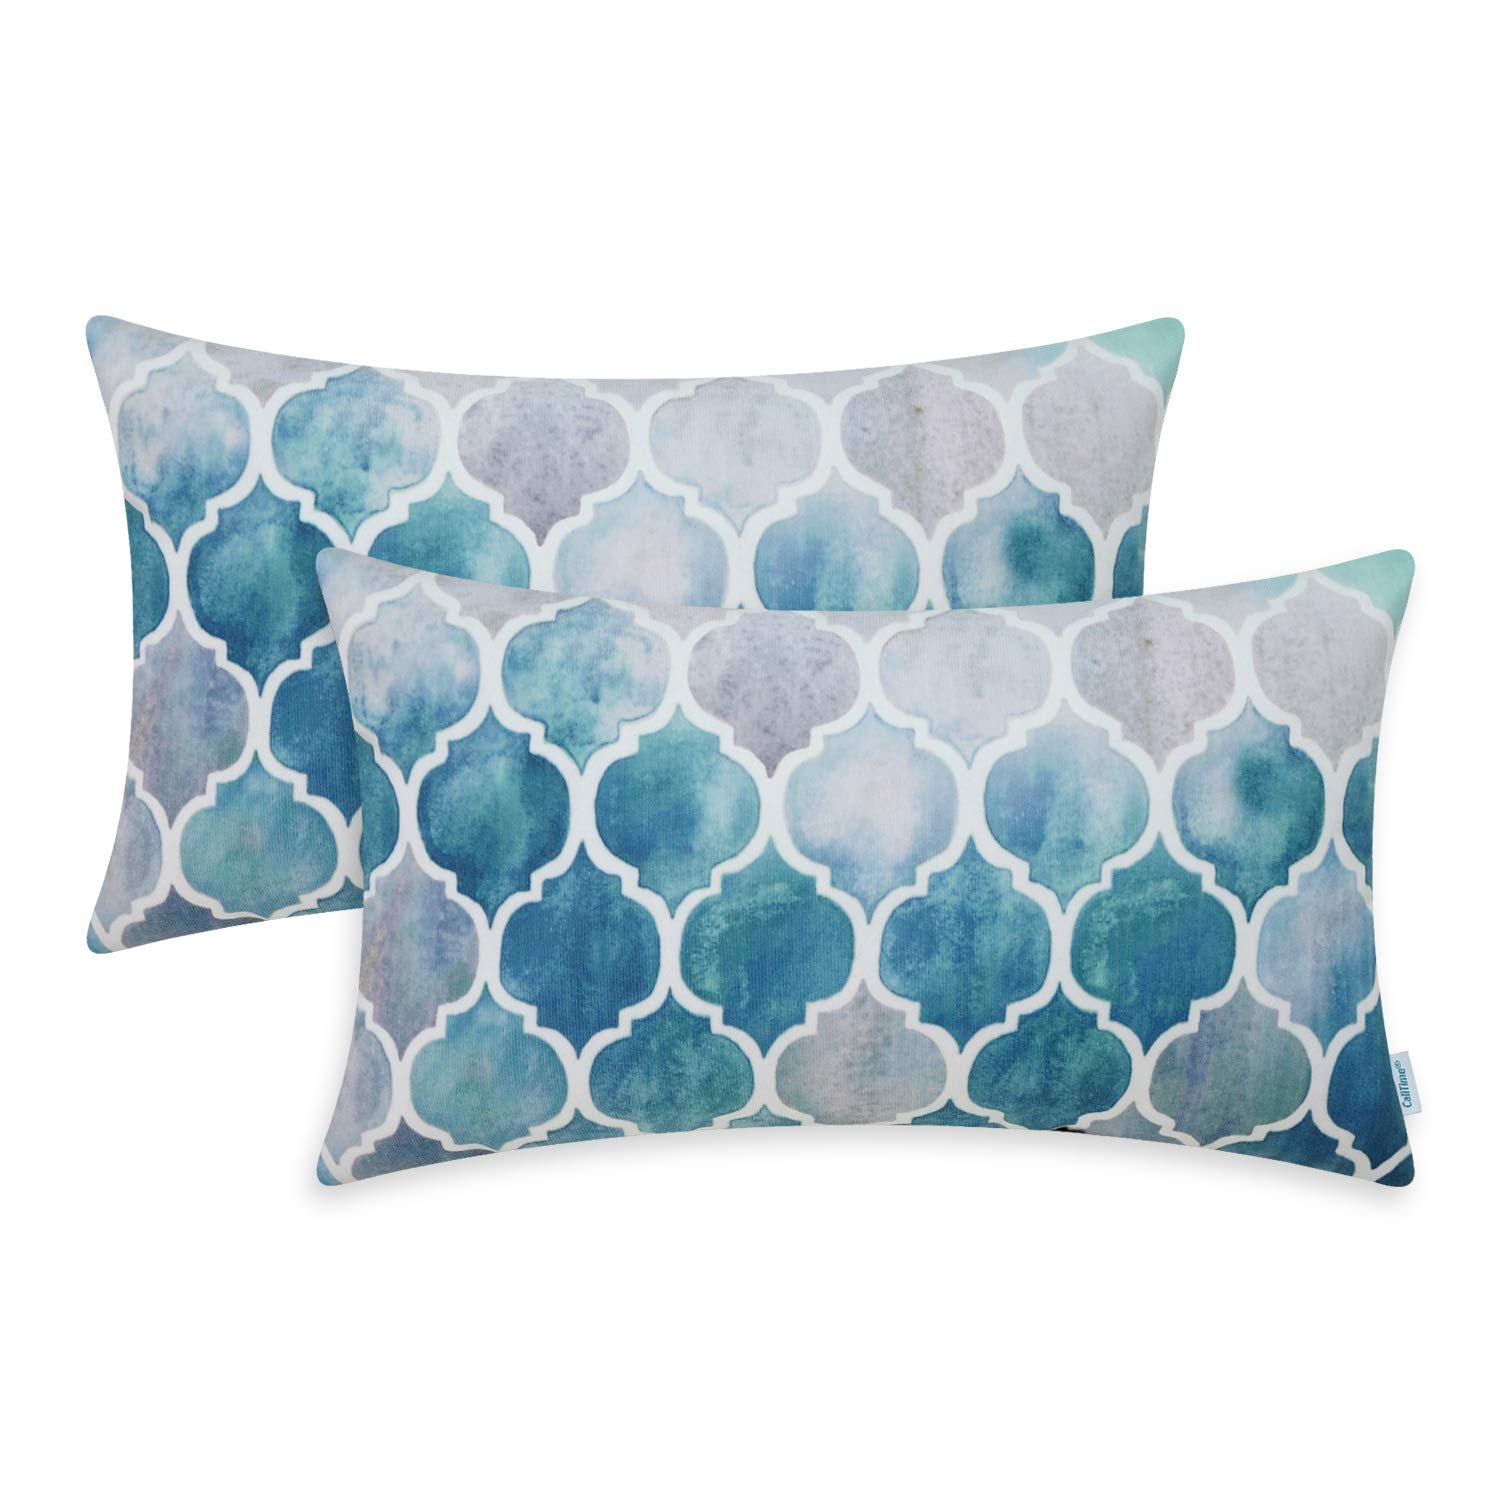 Square Pillow Shell Cushion Covers Manual Hand Painted Colorful Geometric Chains